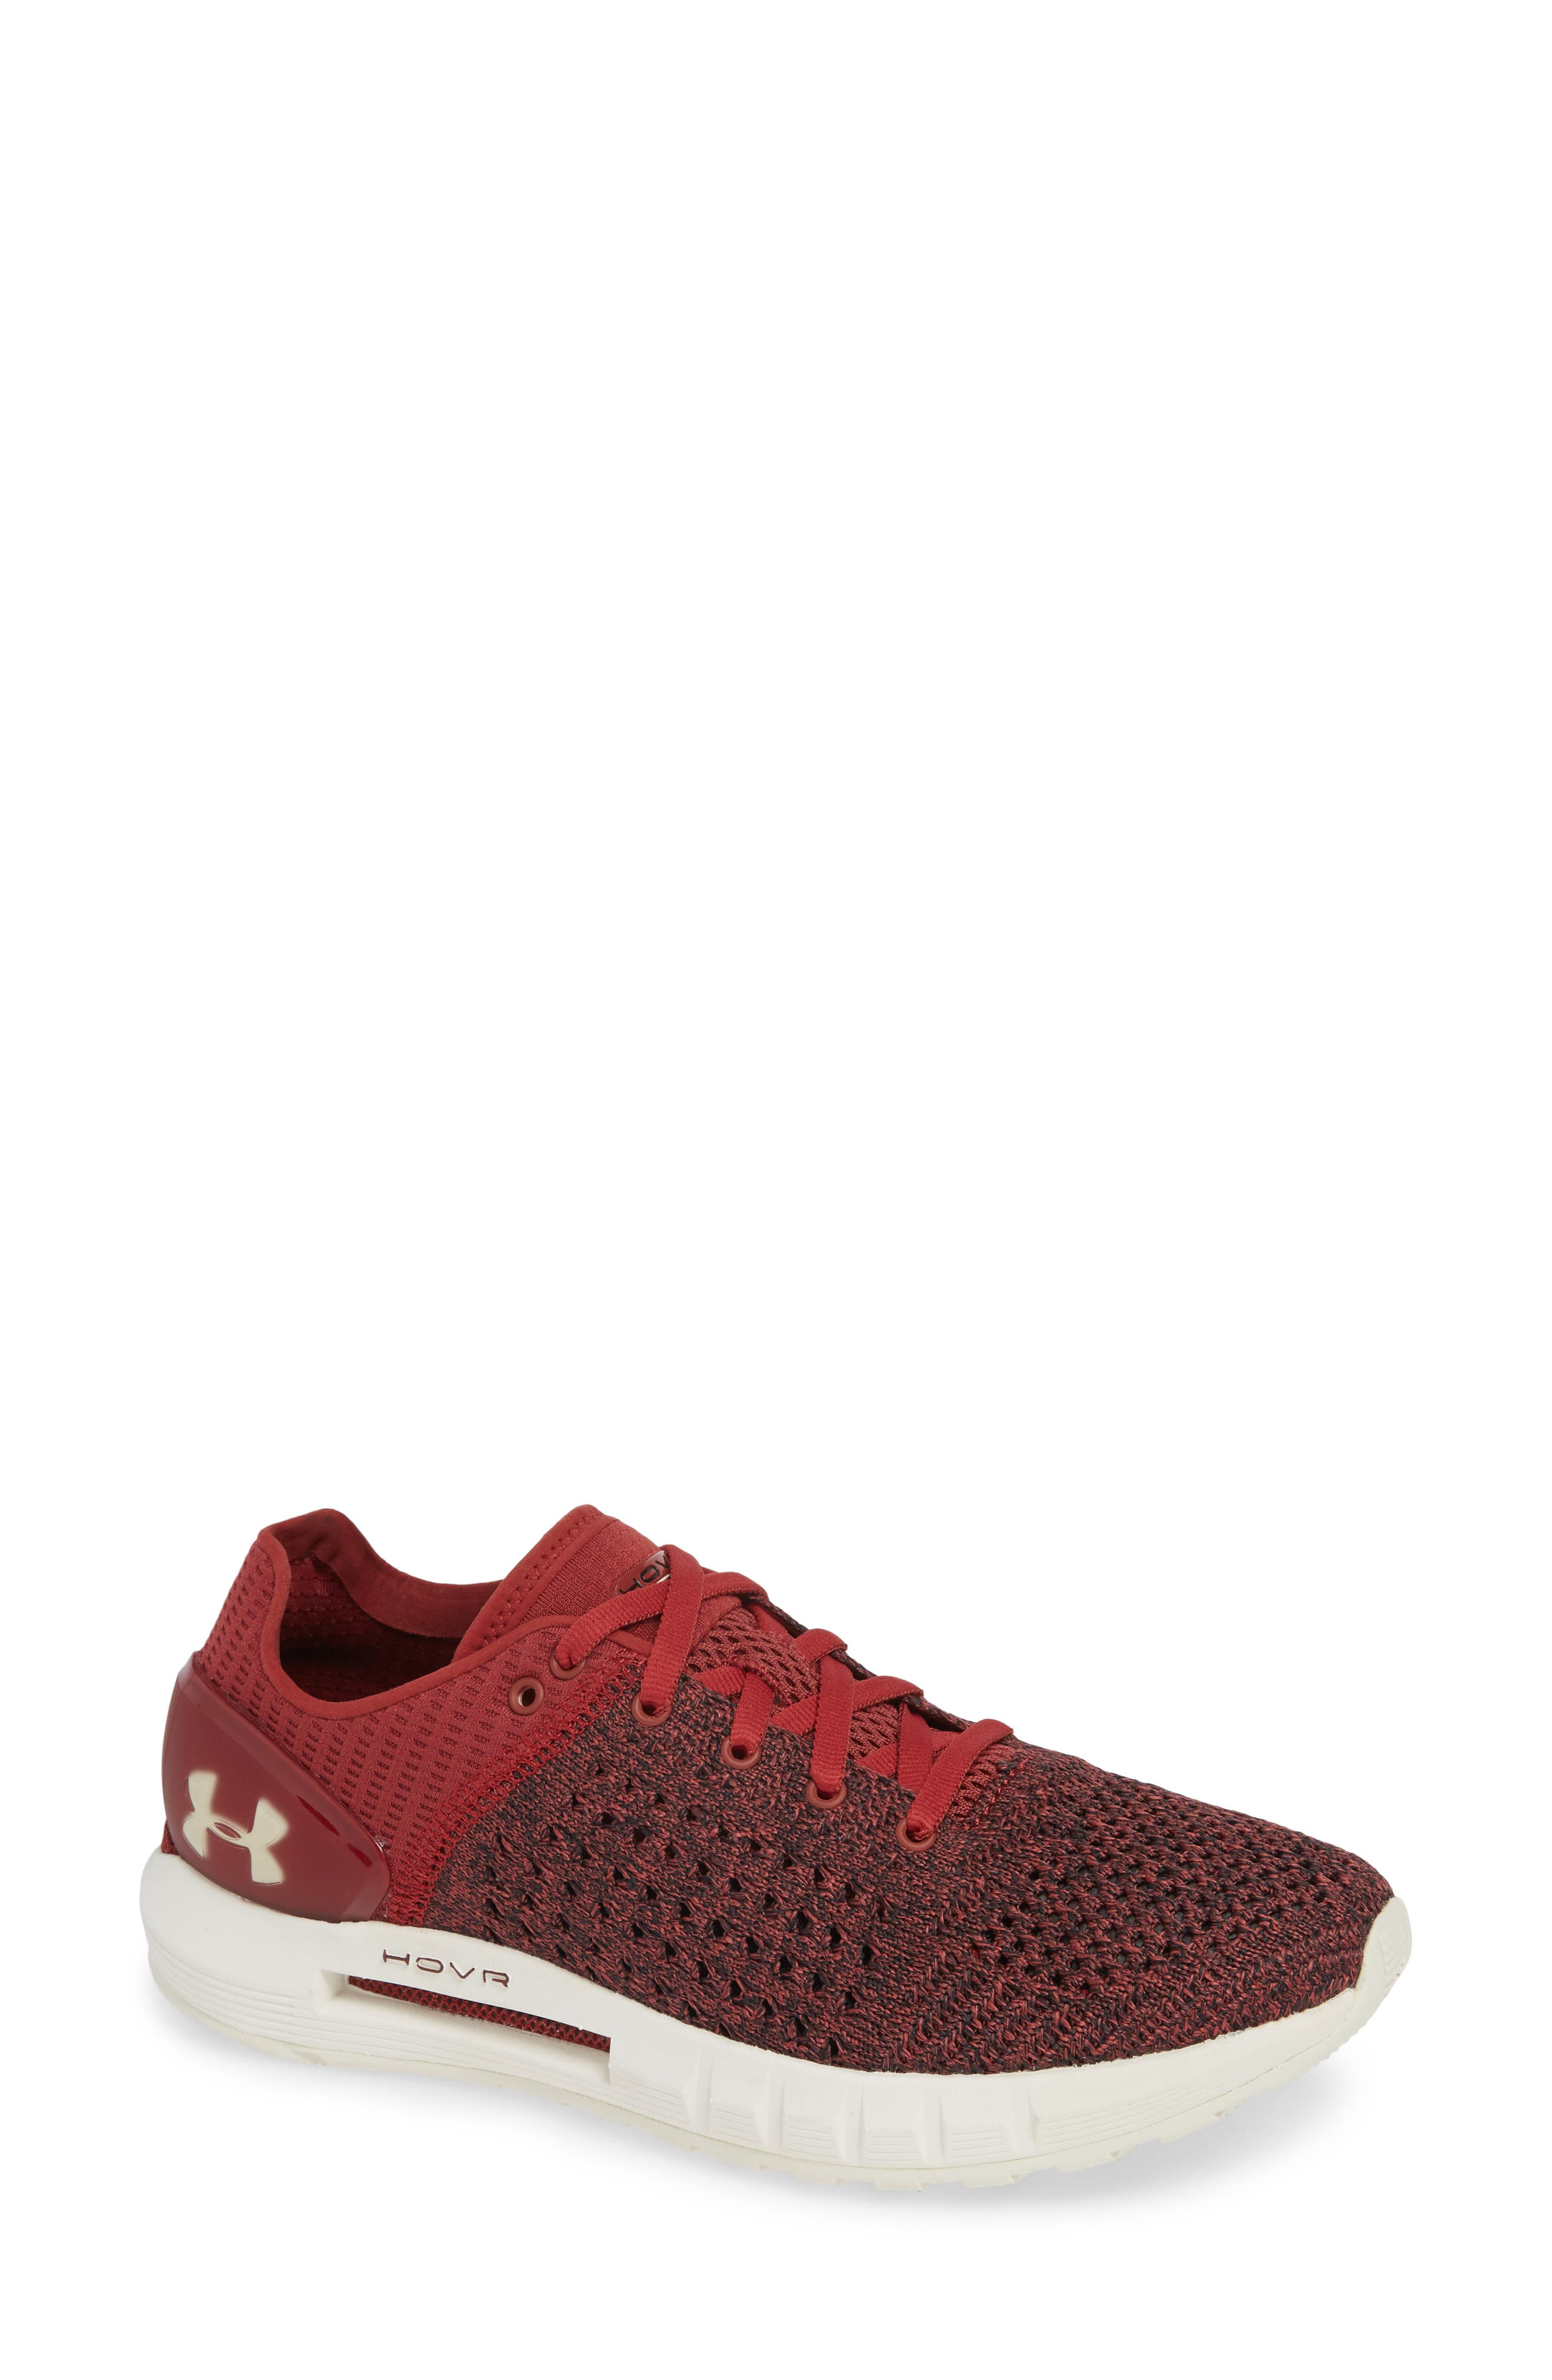 HOVR Sonic NC Running Shoe,                             Main thumbnail 1, color,                             BRICK RED/ BLACK/ IVORY